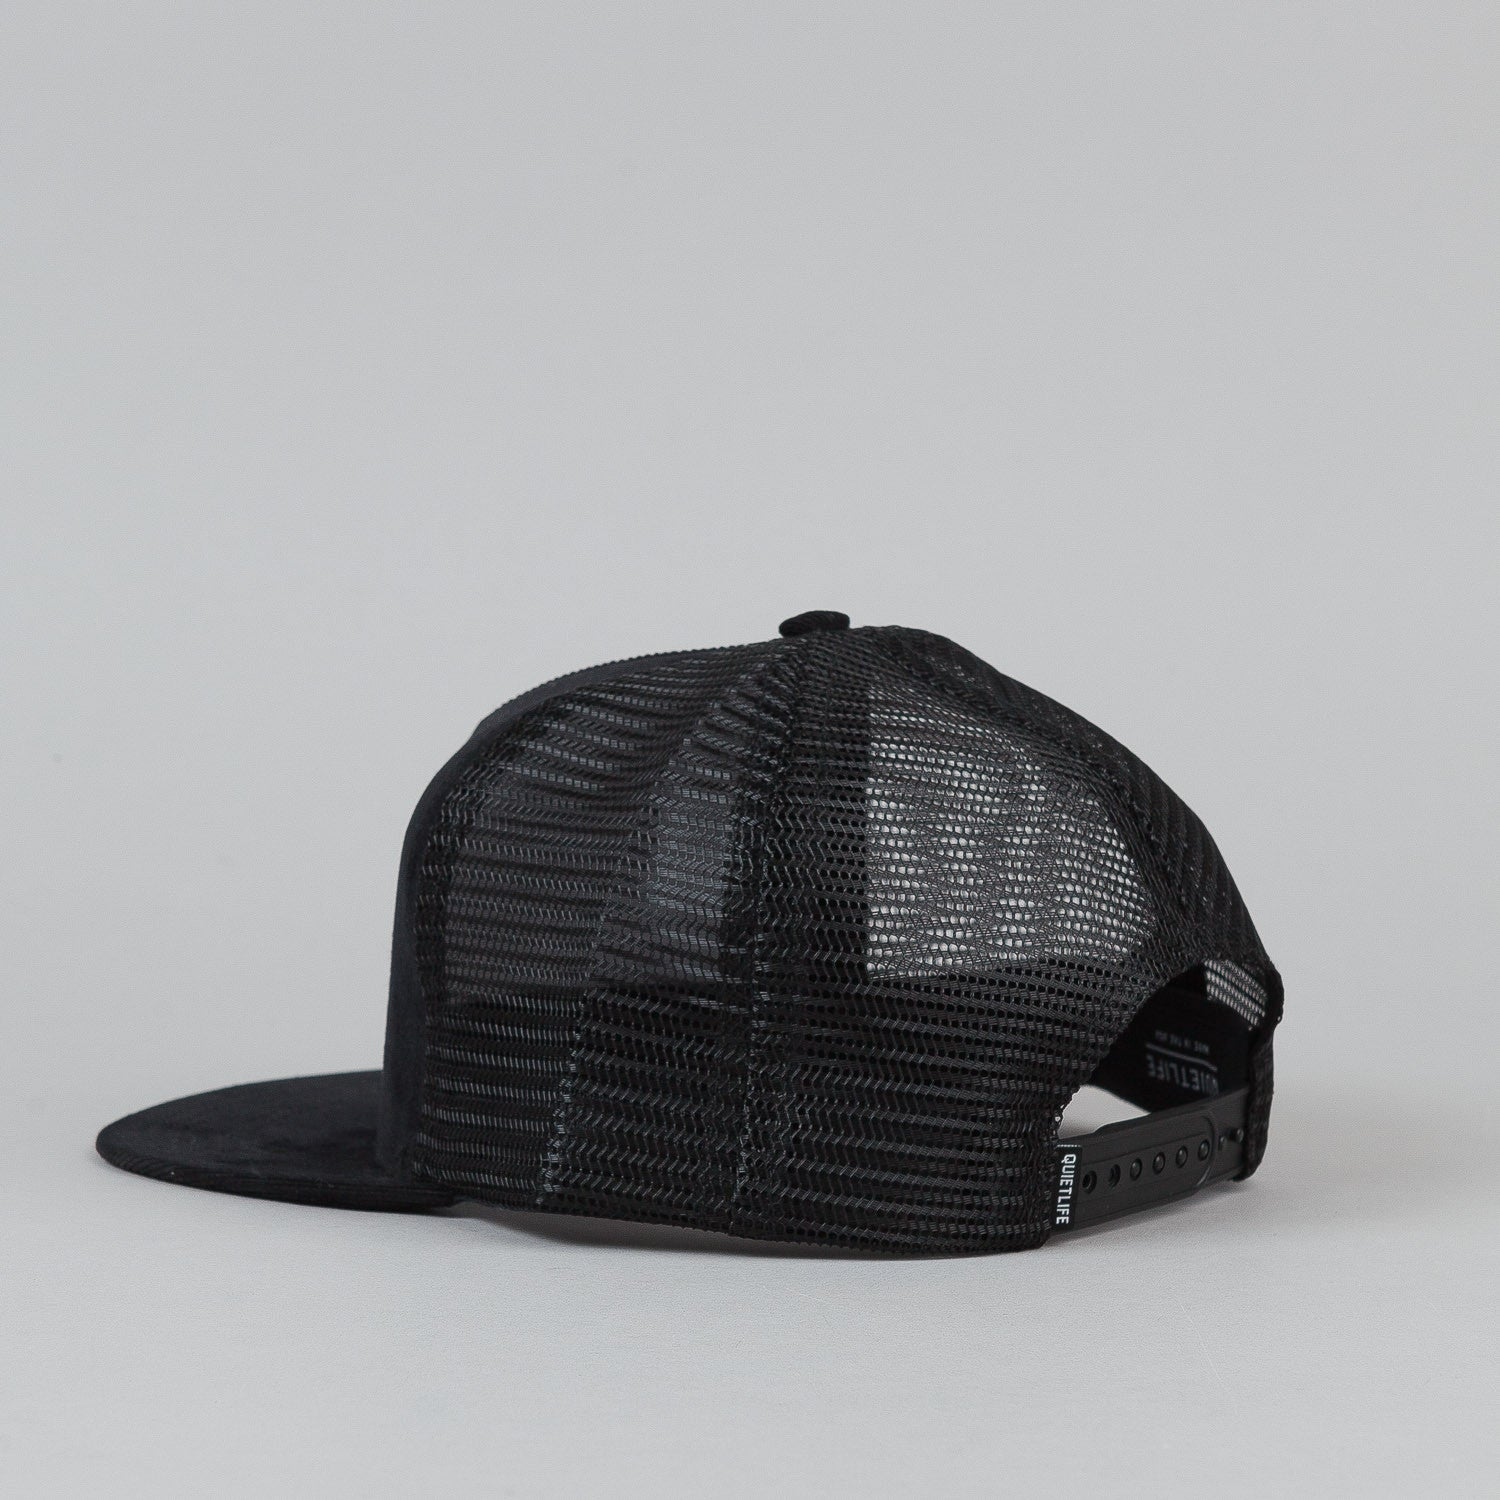 The Quiet Life Explorer Trucker Cap - Black / Black